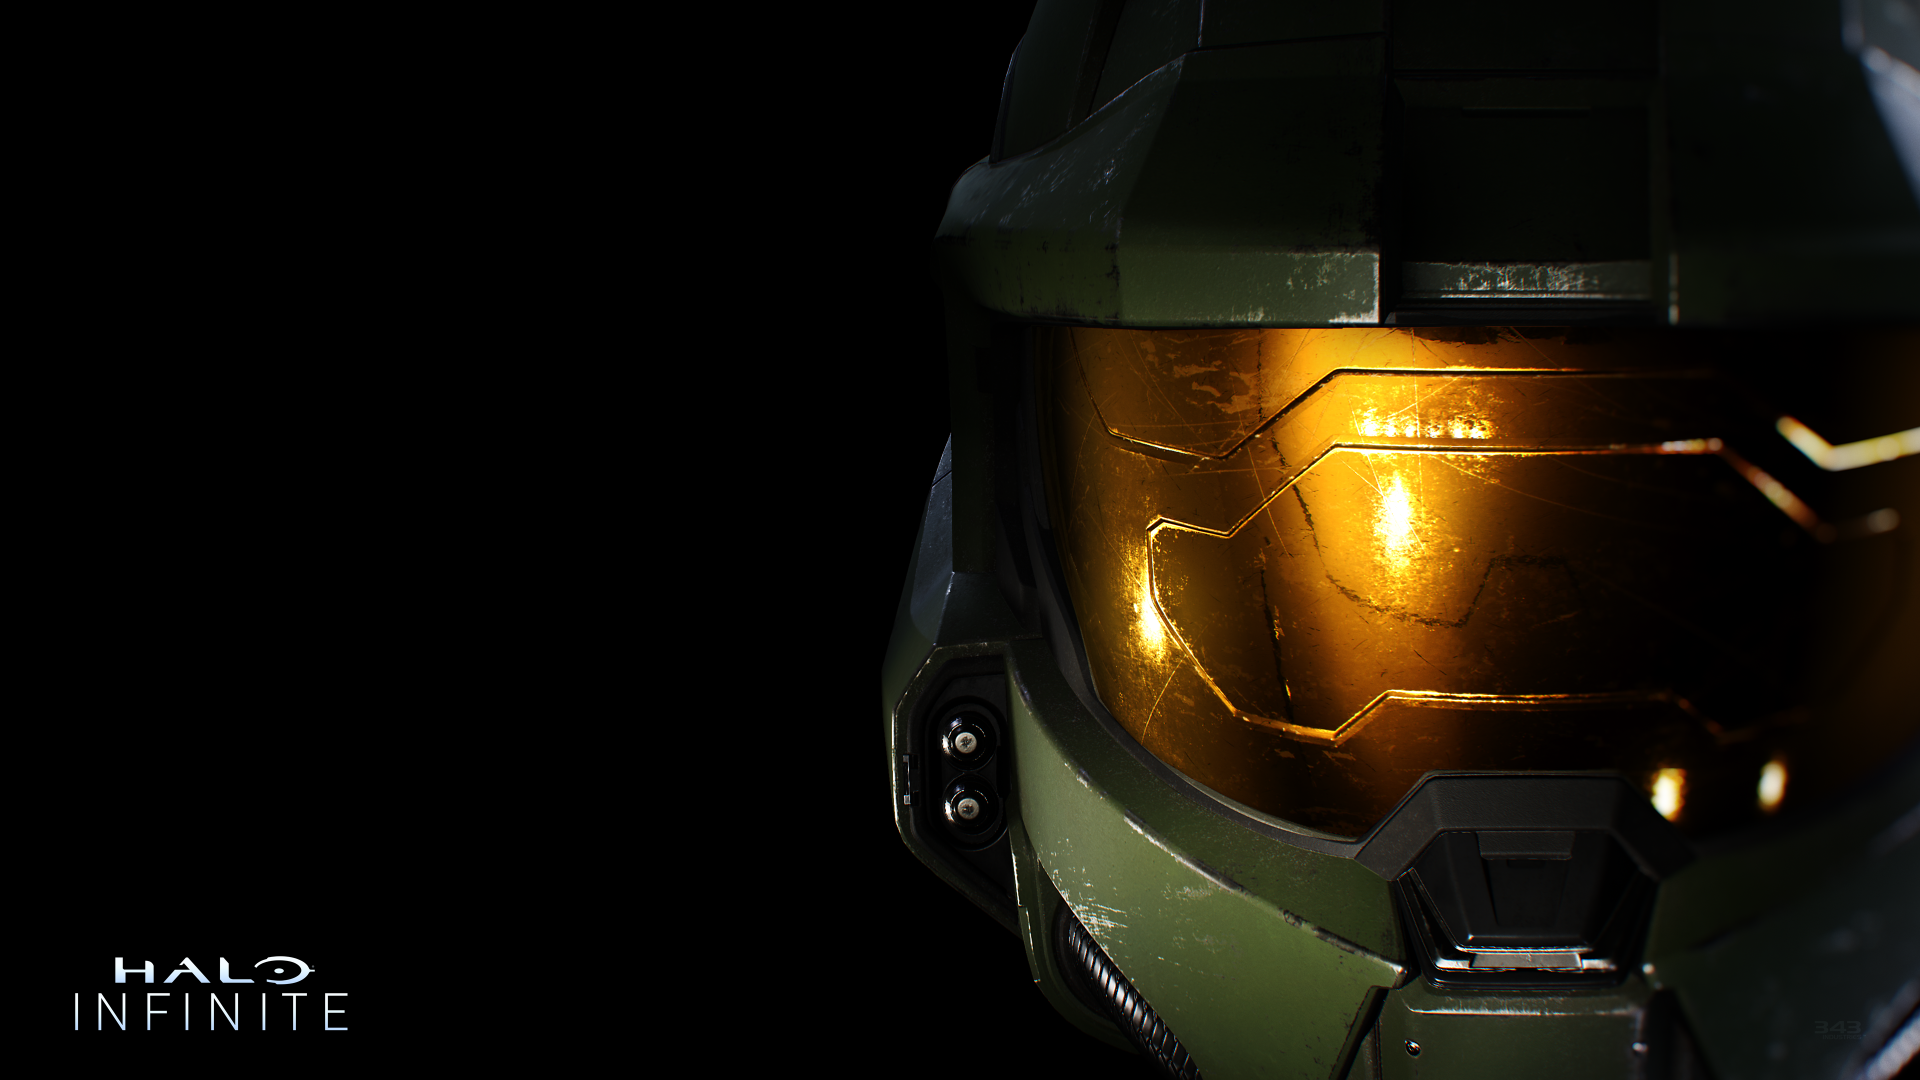 Video Game Halo Infinite Halo Hd Wallpaper Background Image In 2020 Combat Evolved Game Informer Halo